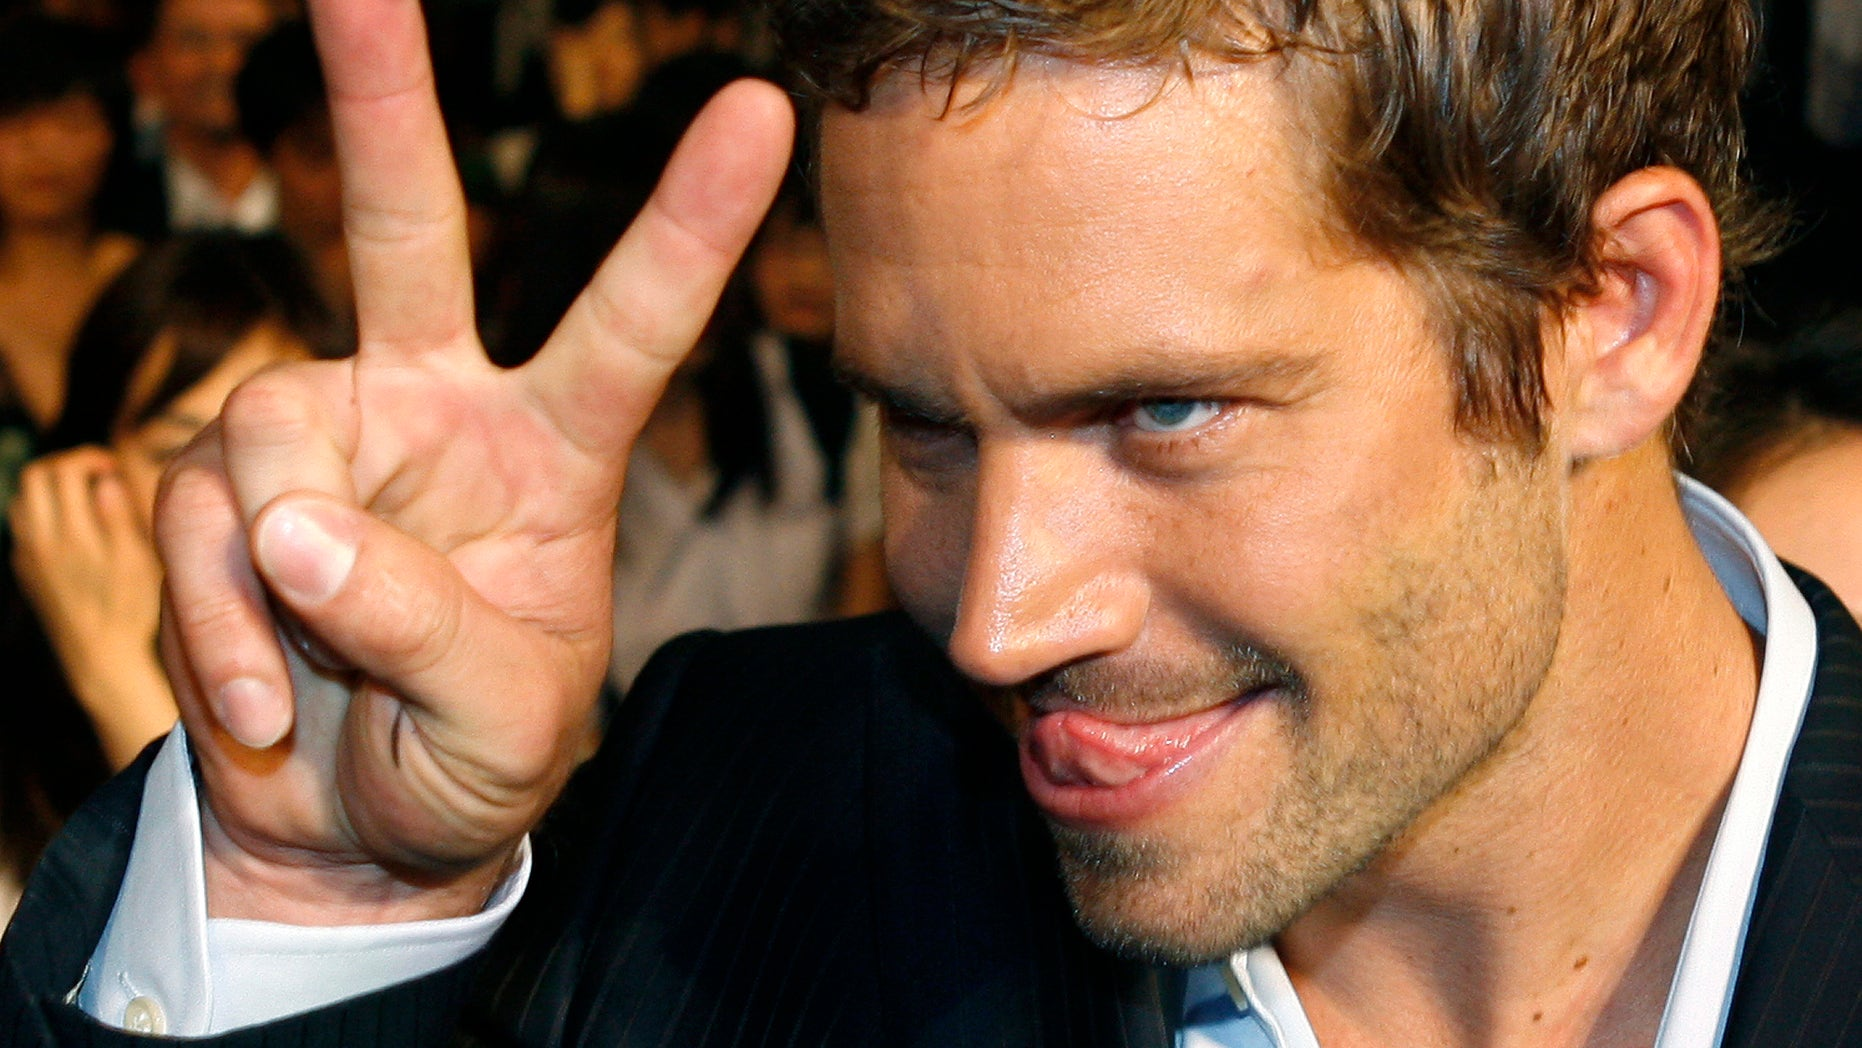 """April 15, 2009. Paul Walker gestures to a fan during the premiere of the movie """"Fast and Furious 4"""" in Taipei."""